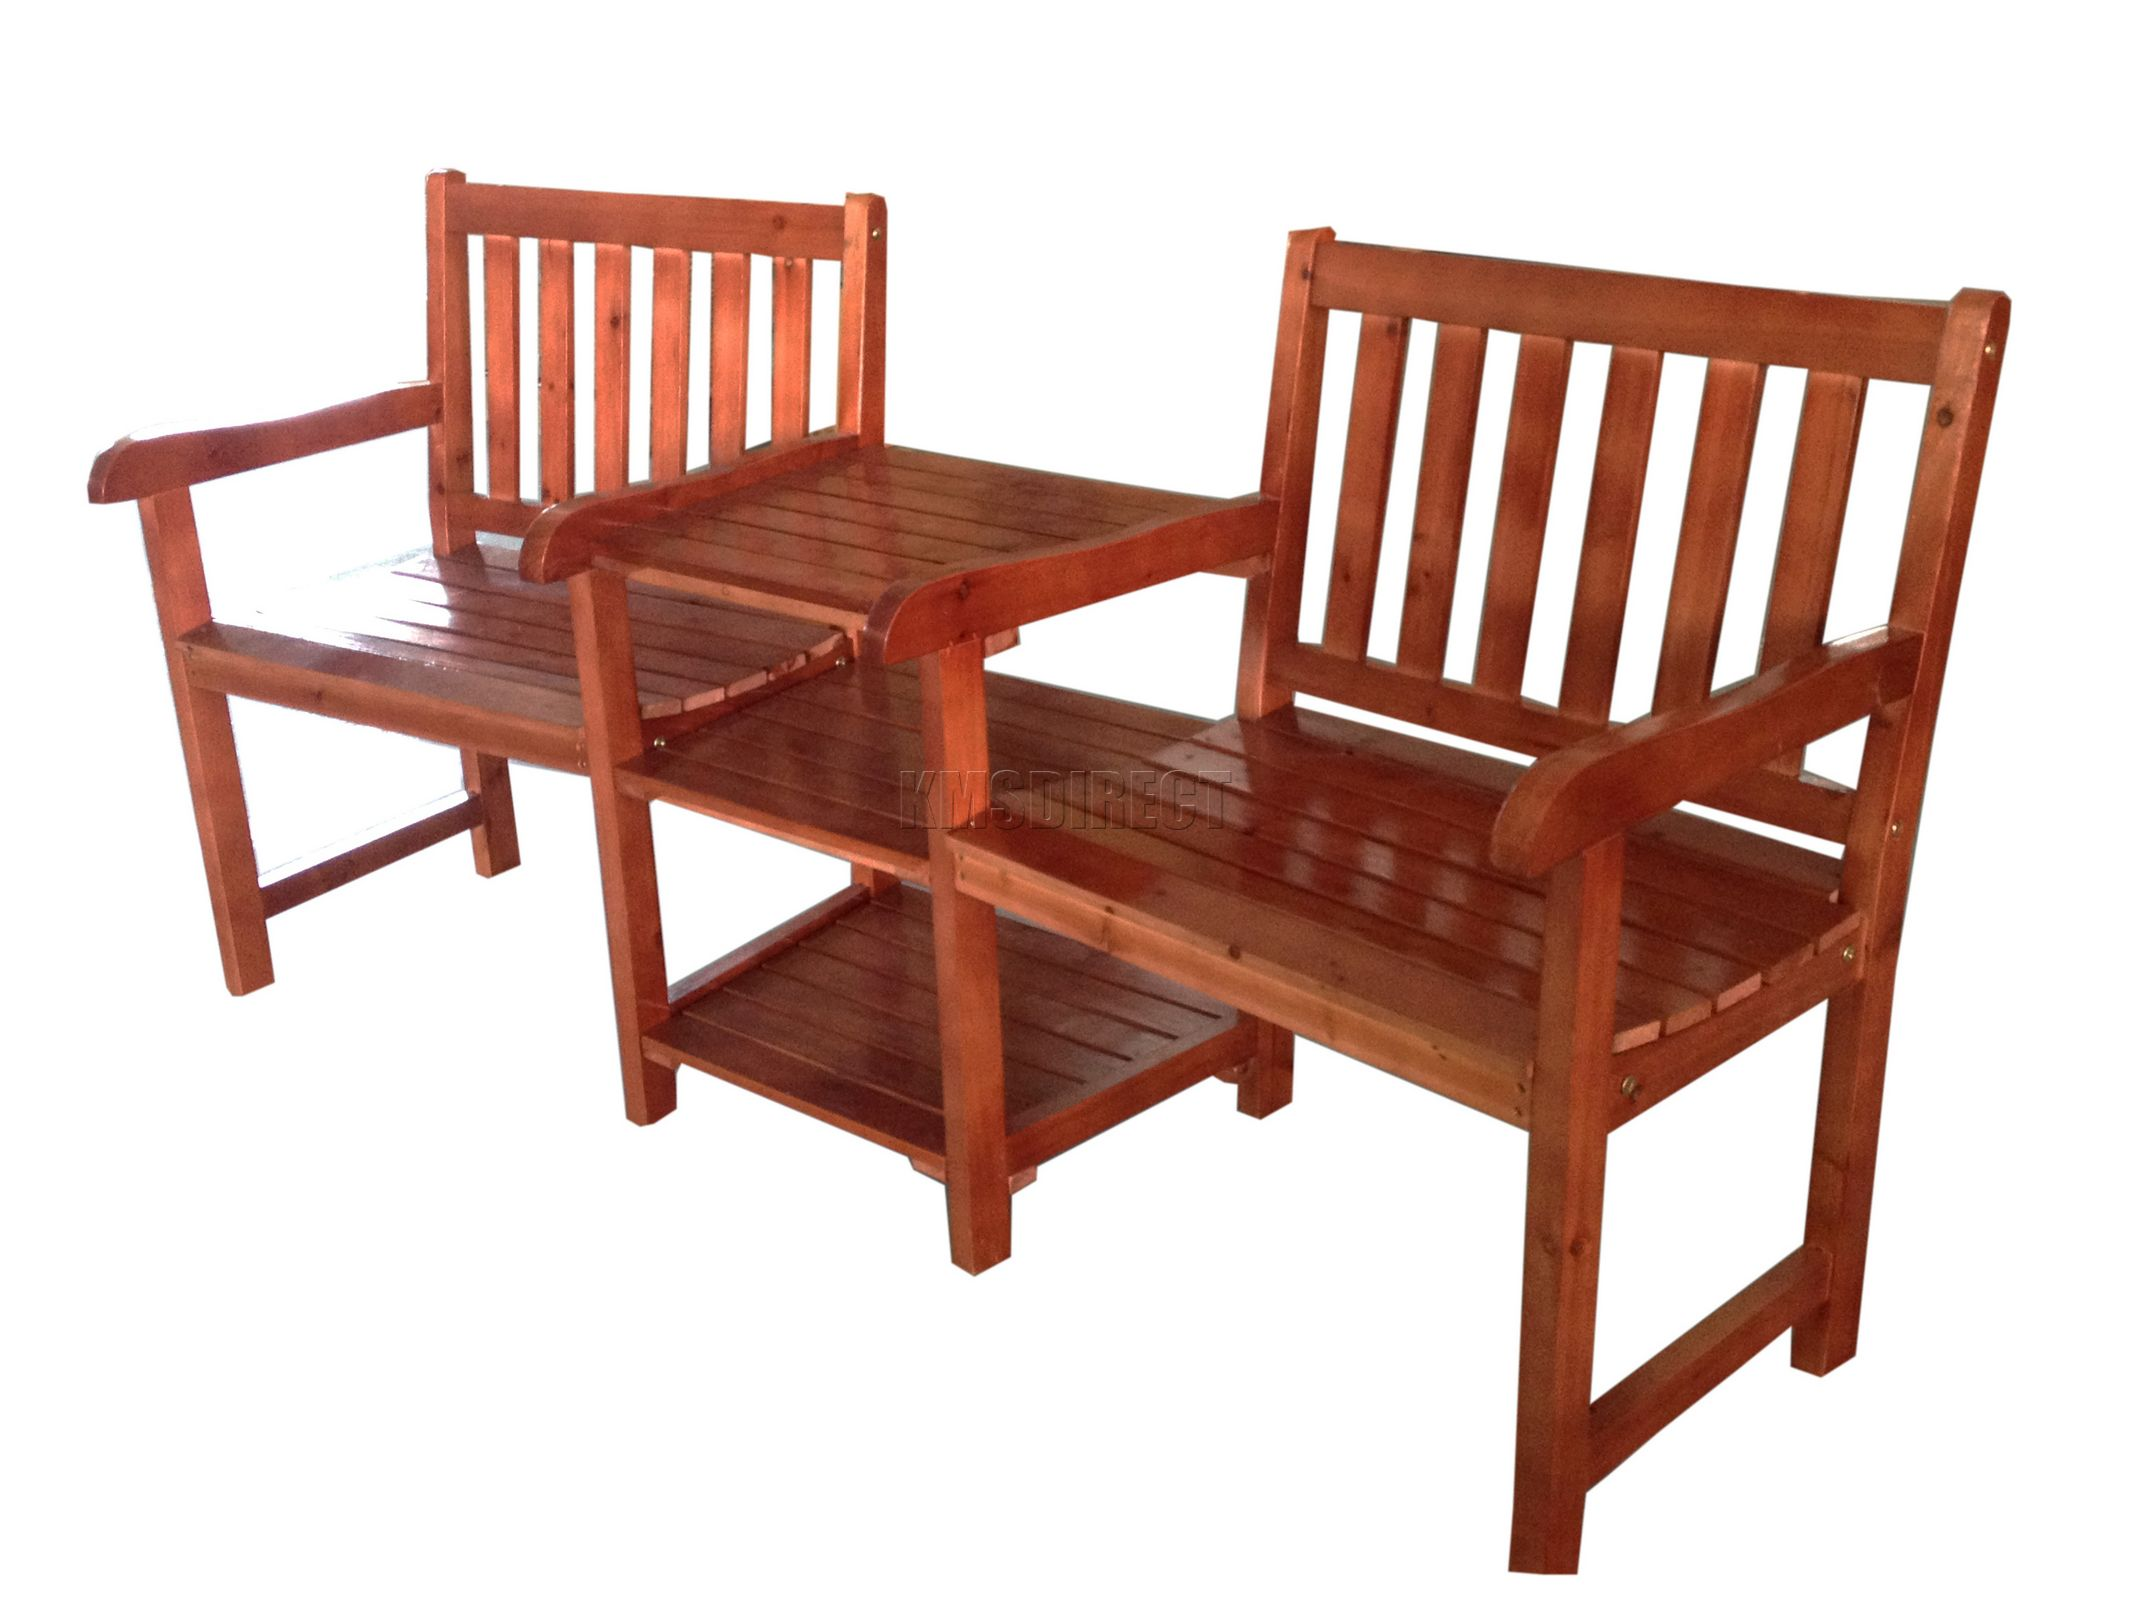 two seater garden table and chairs mesh dining chair outdoor furniture patio 2 wooden companion